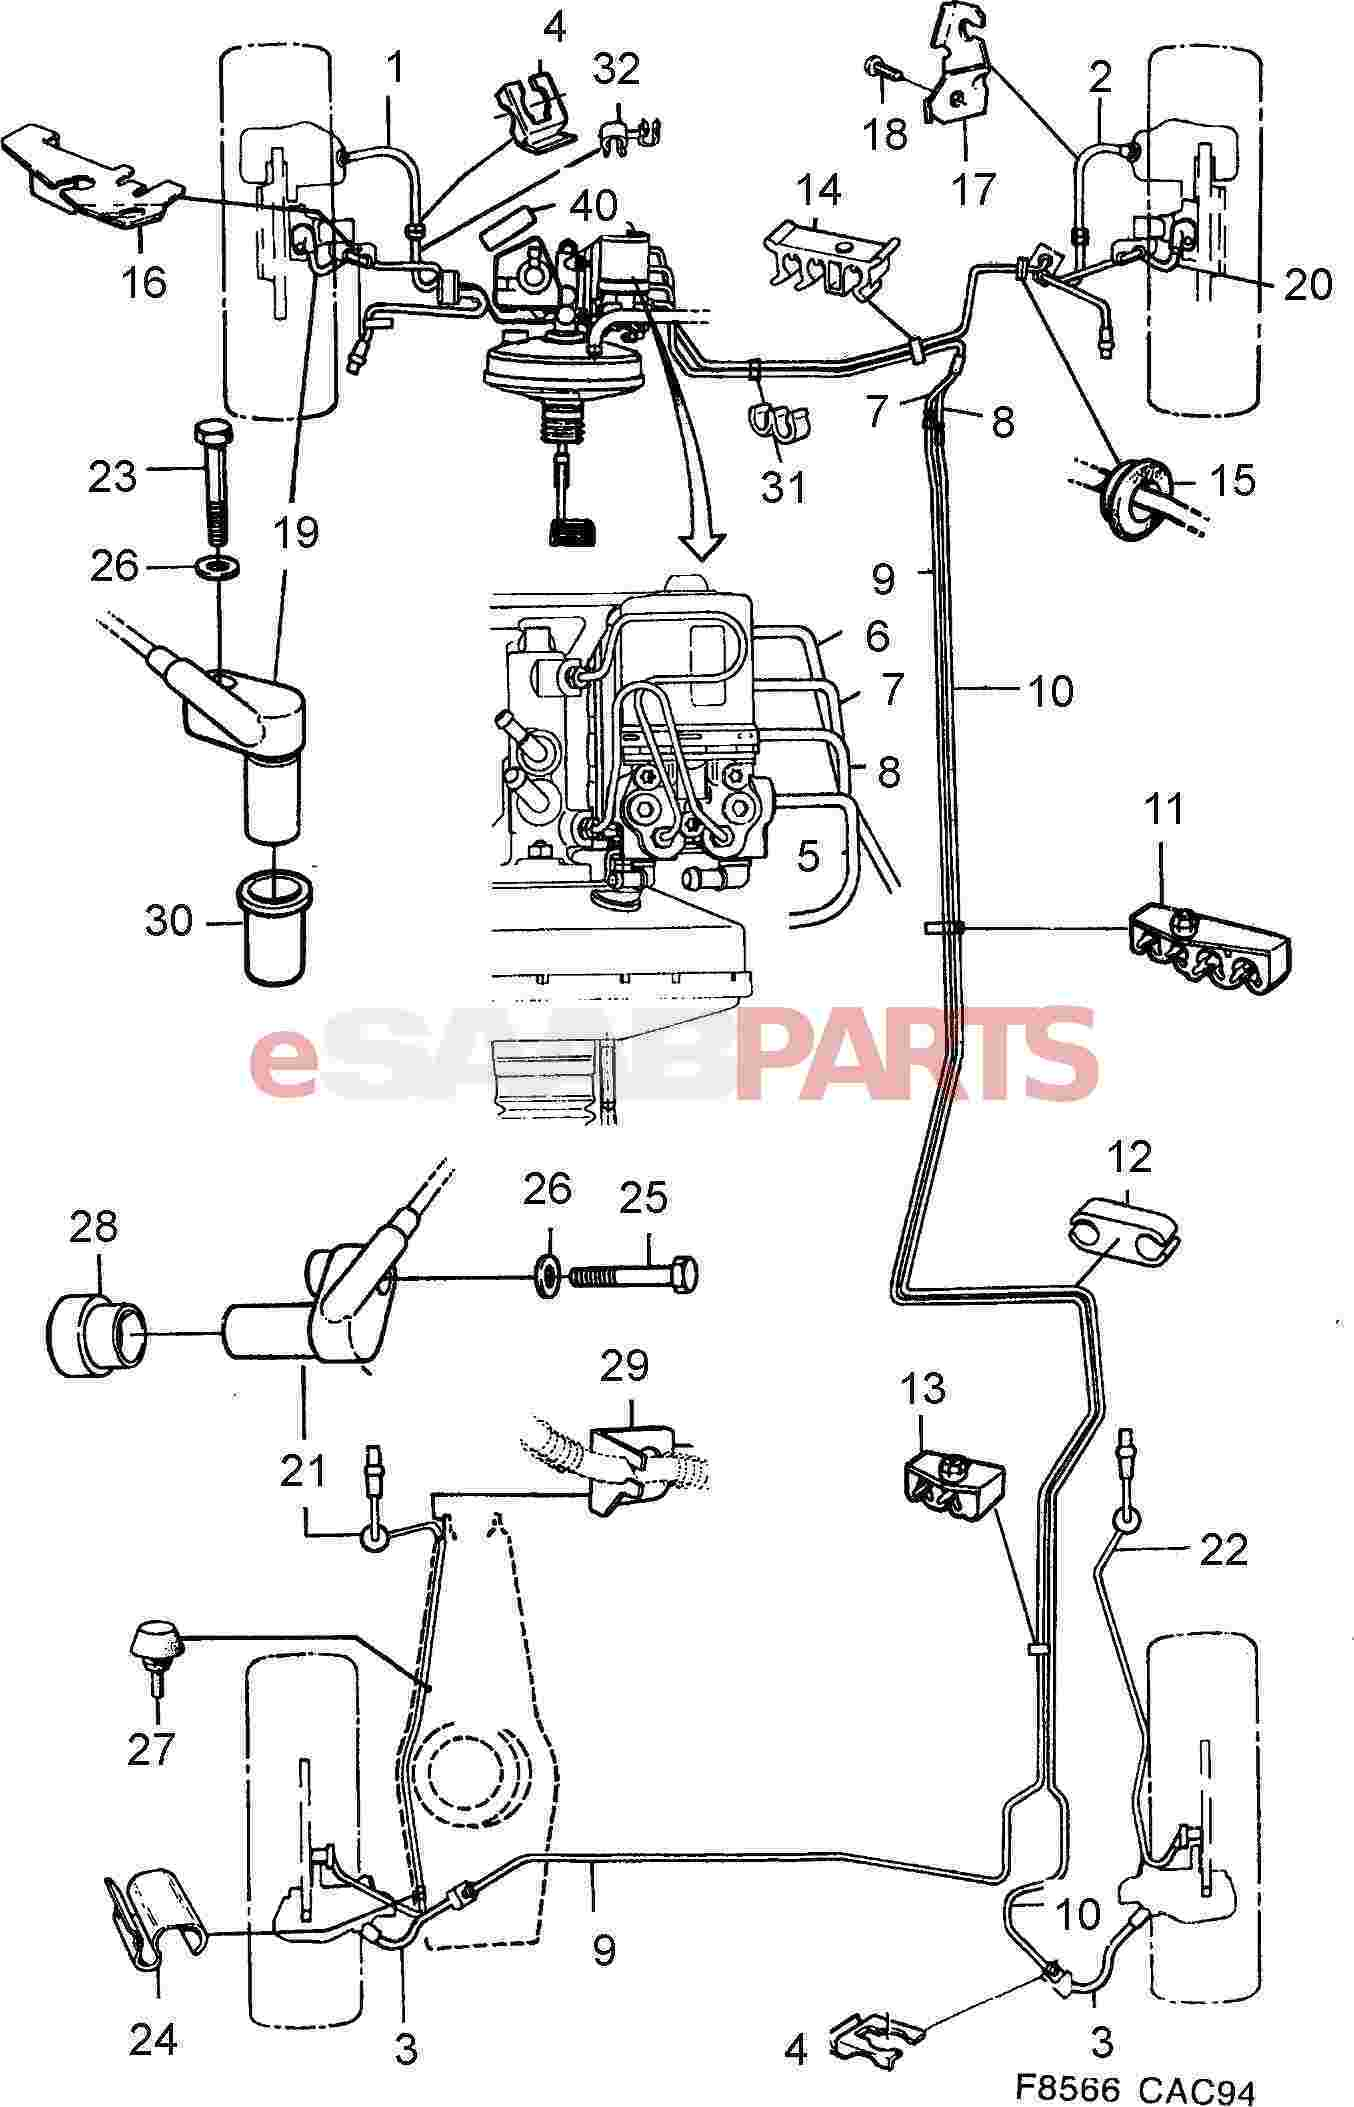 saab brakes diagram 2 15 kenmo lp de \u2022saab brakes diagram manual e books rh 19 maria sievers de brake caliper diagram brake parts